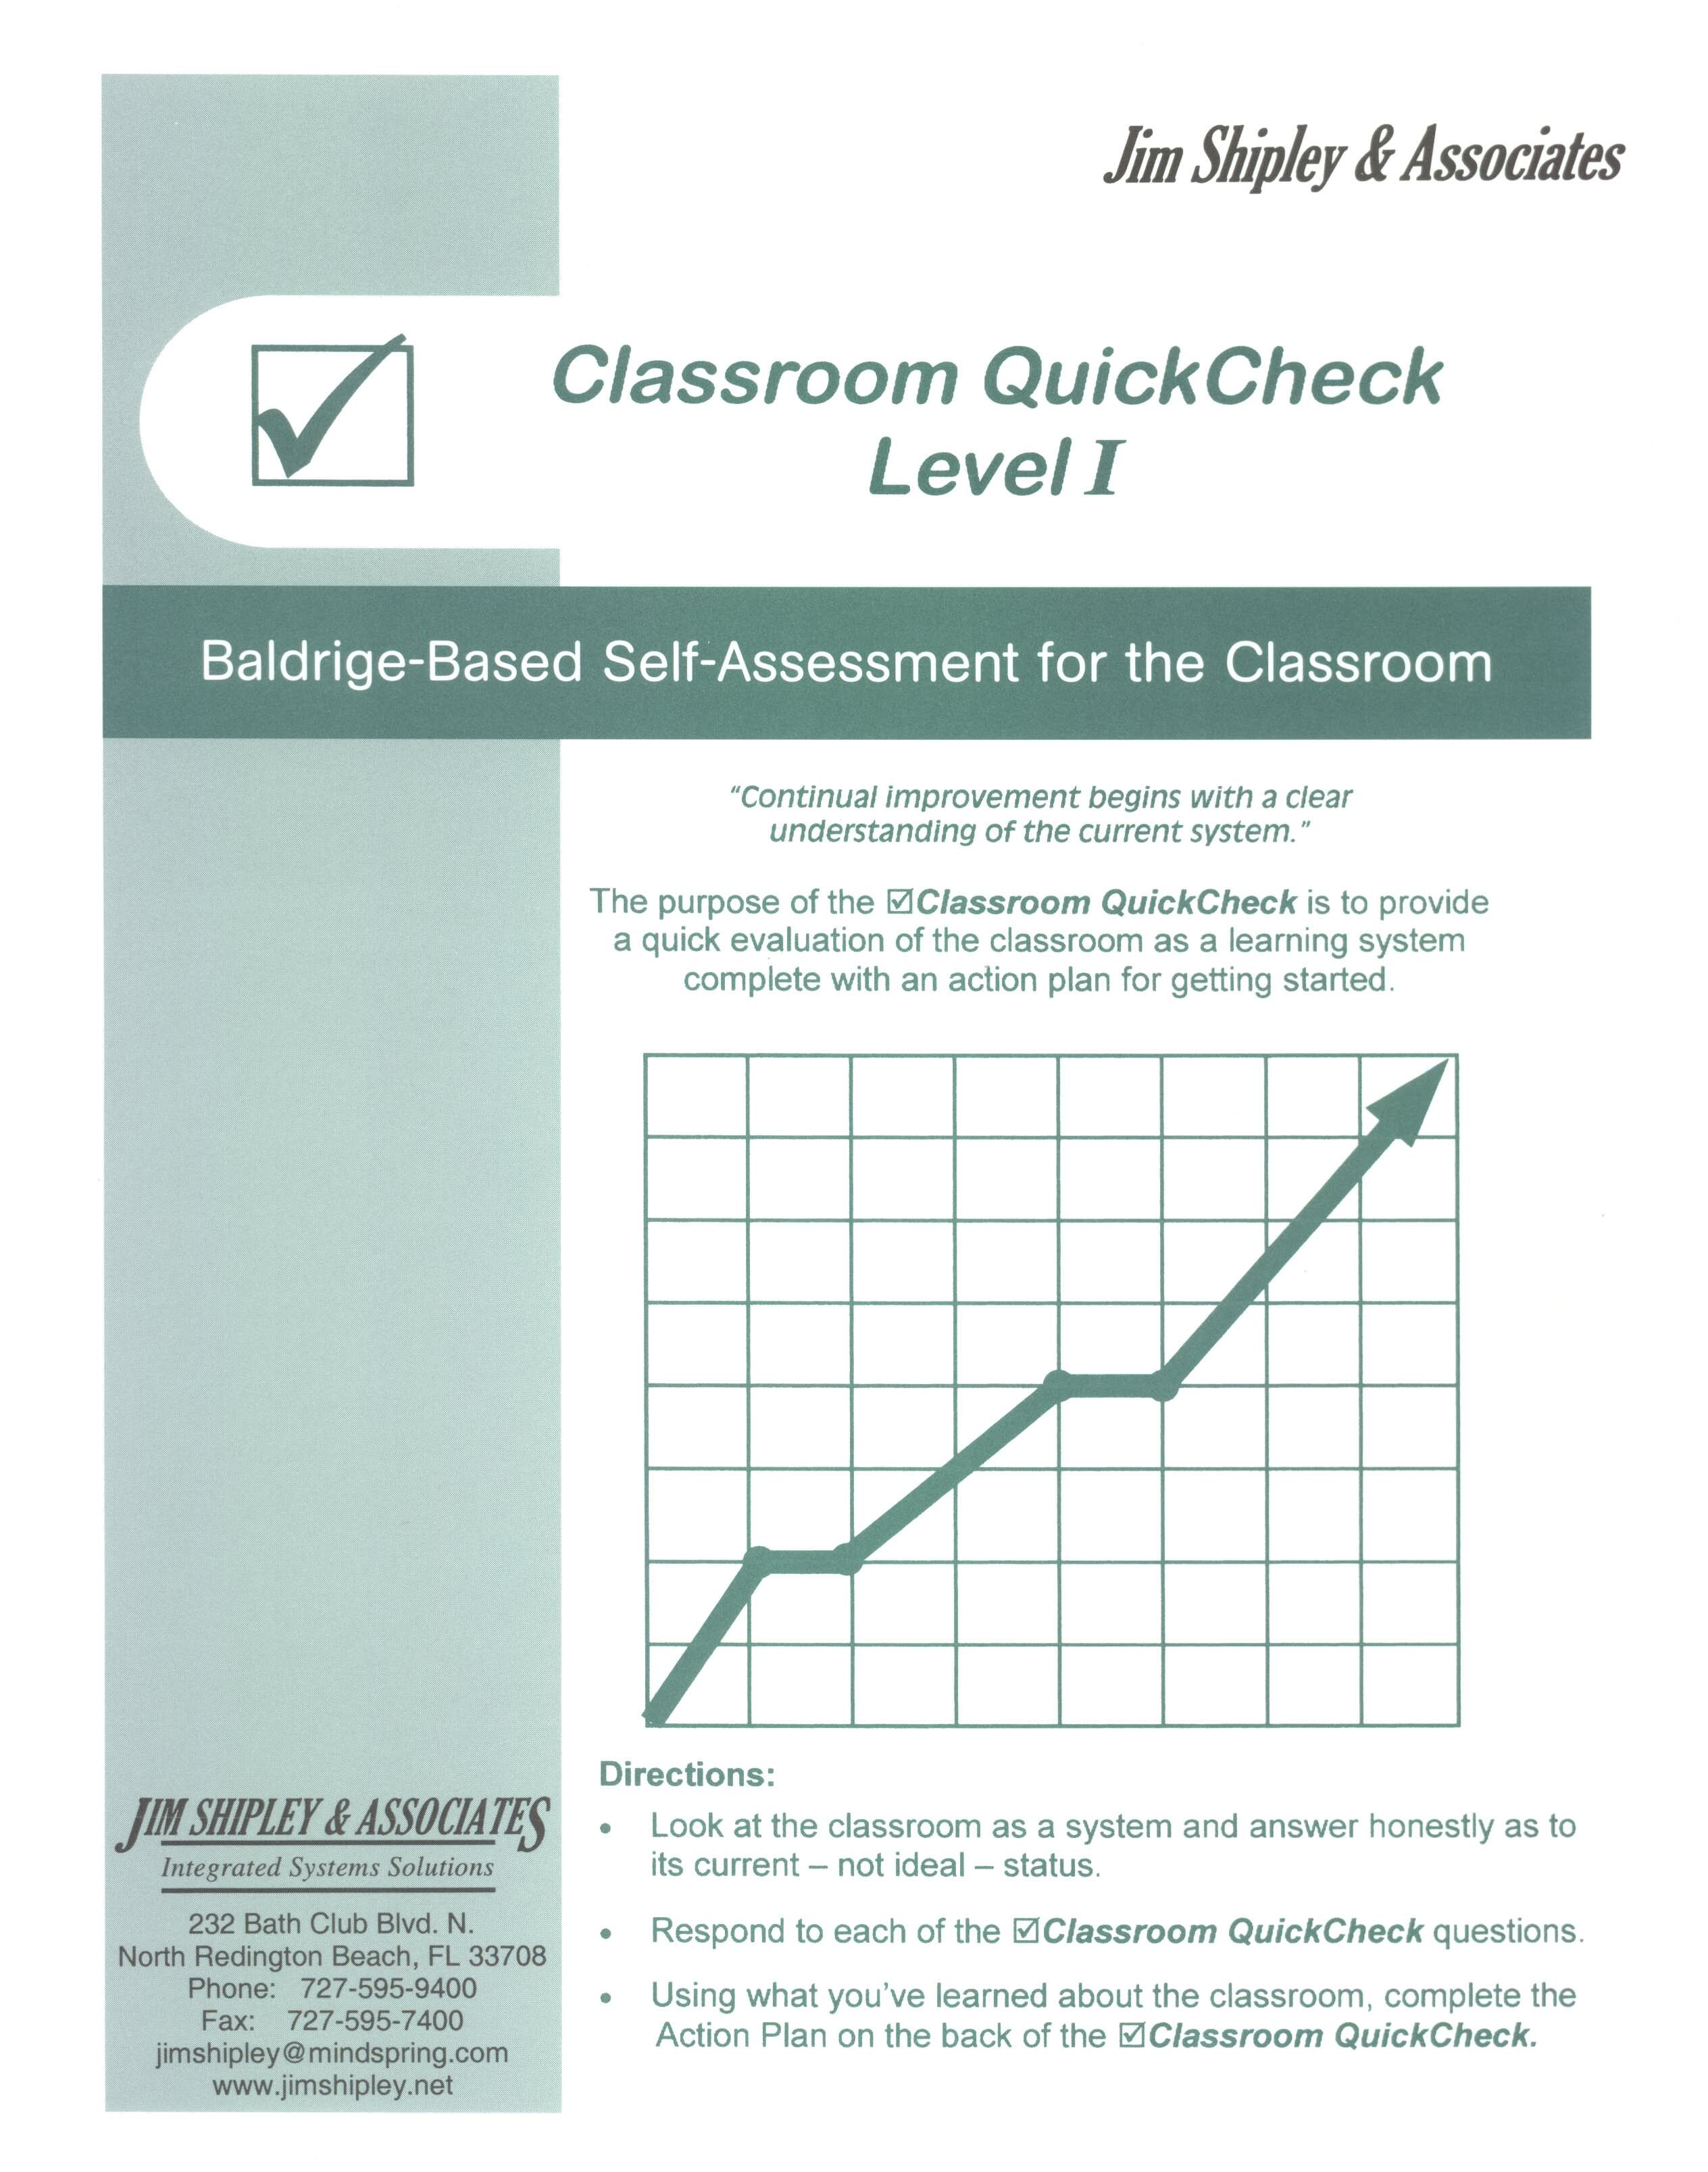 QCC - Classroom QuickCheck Cover Image